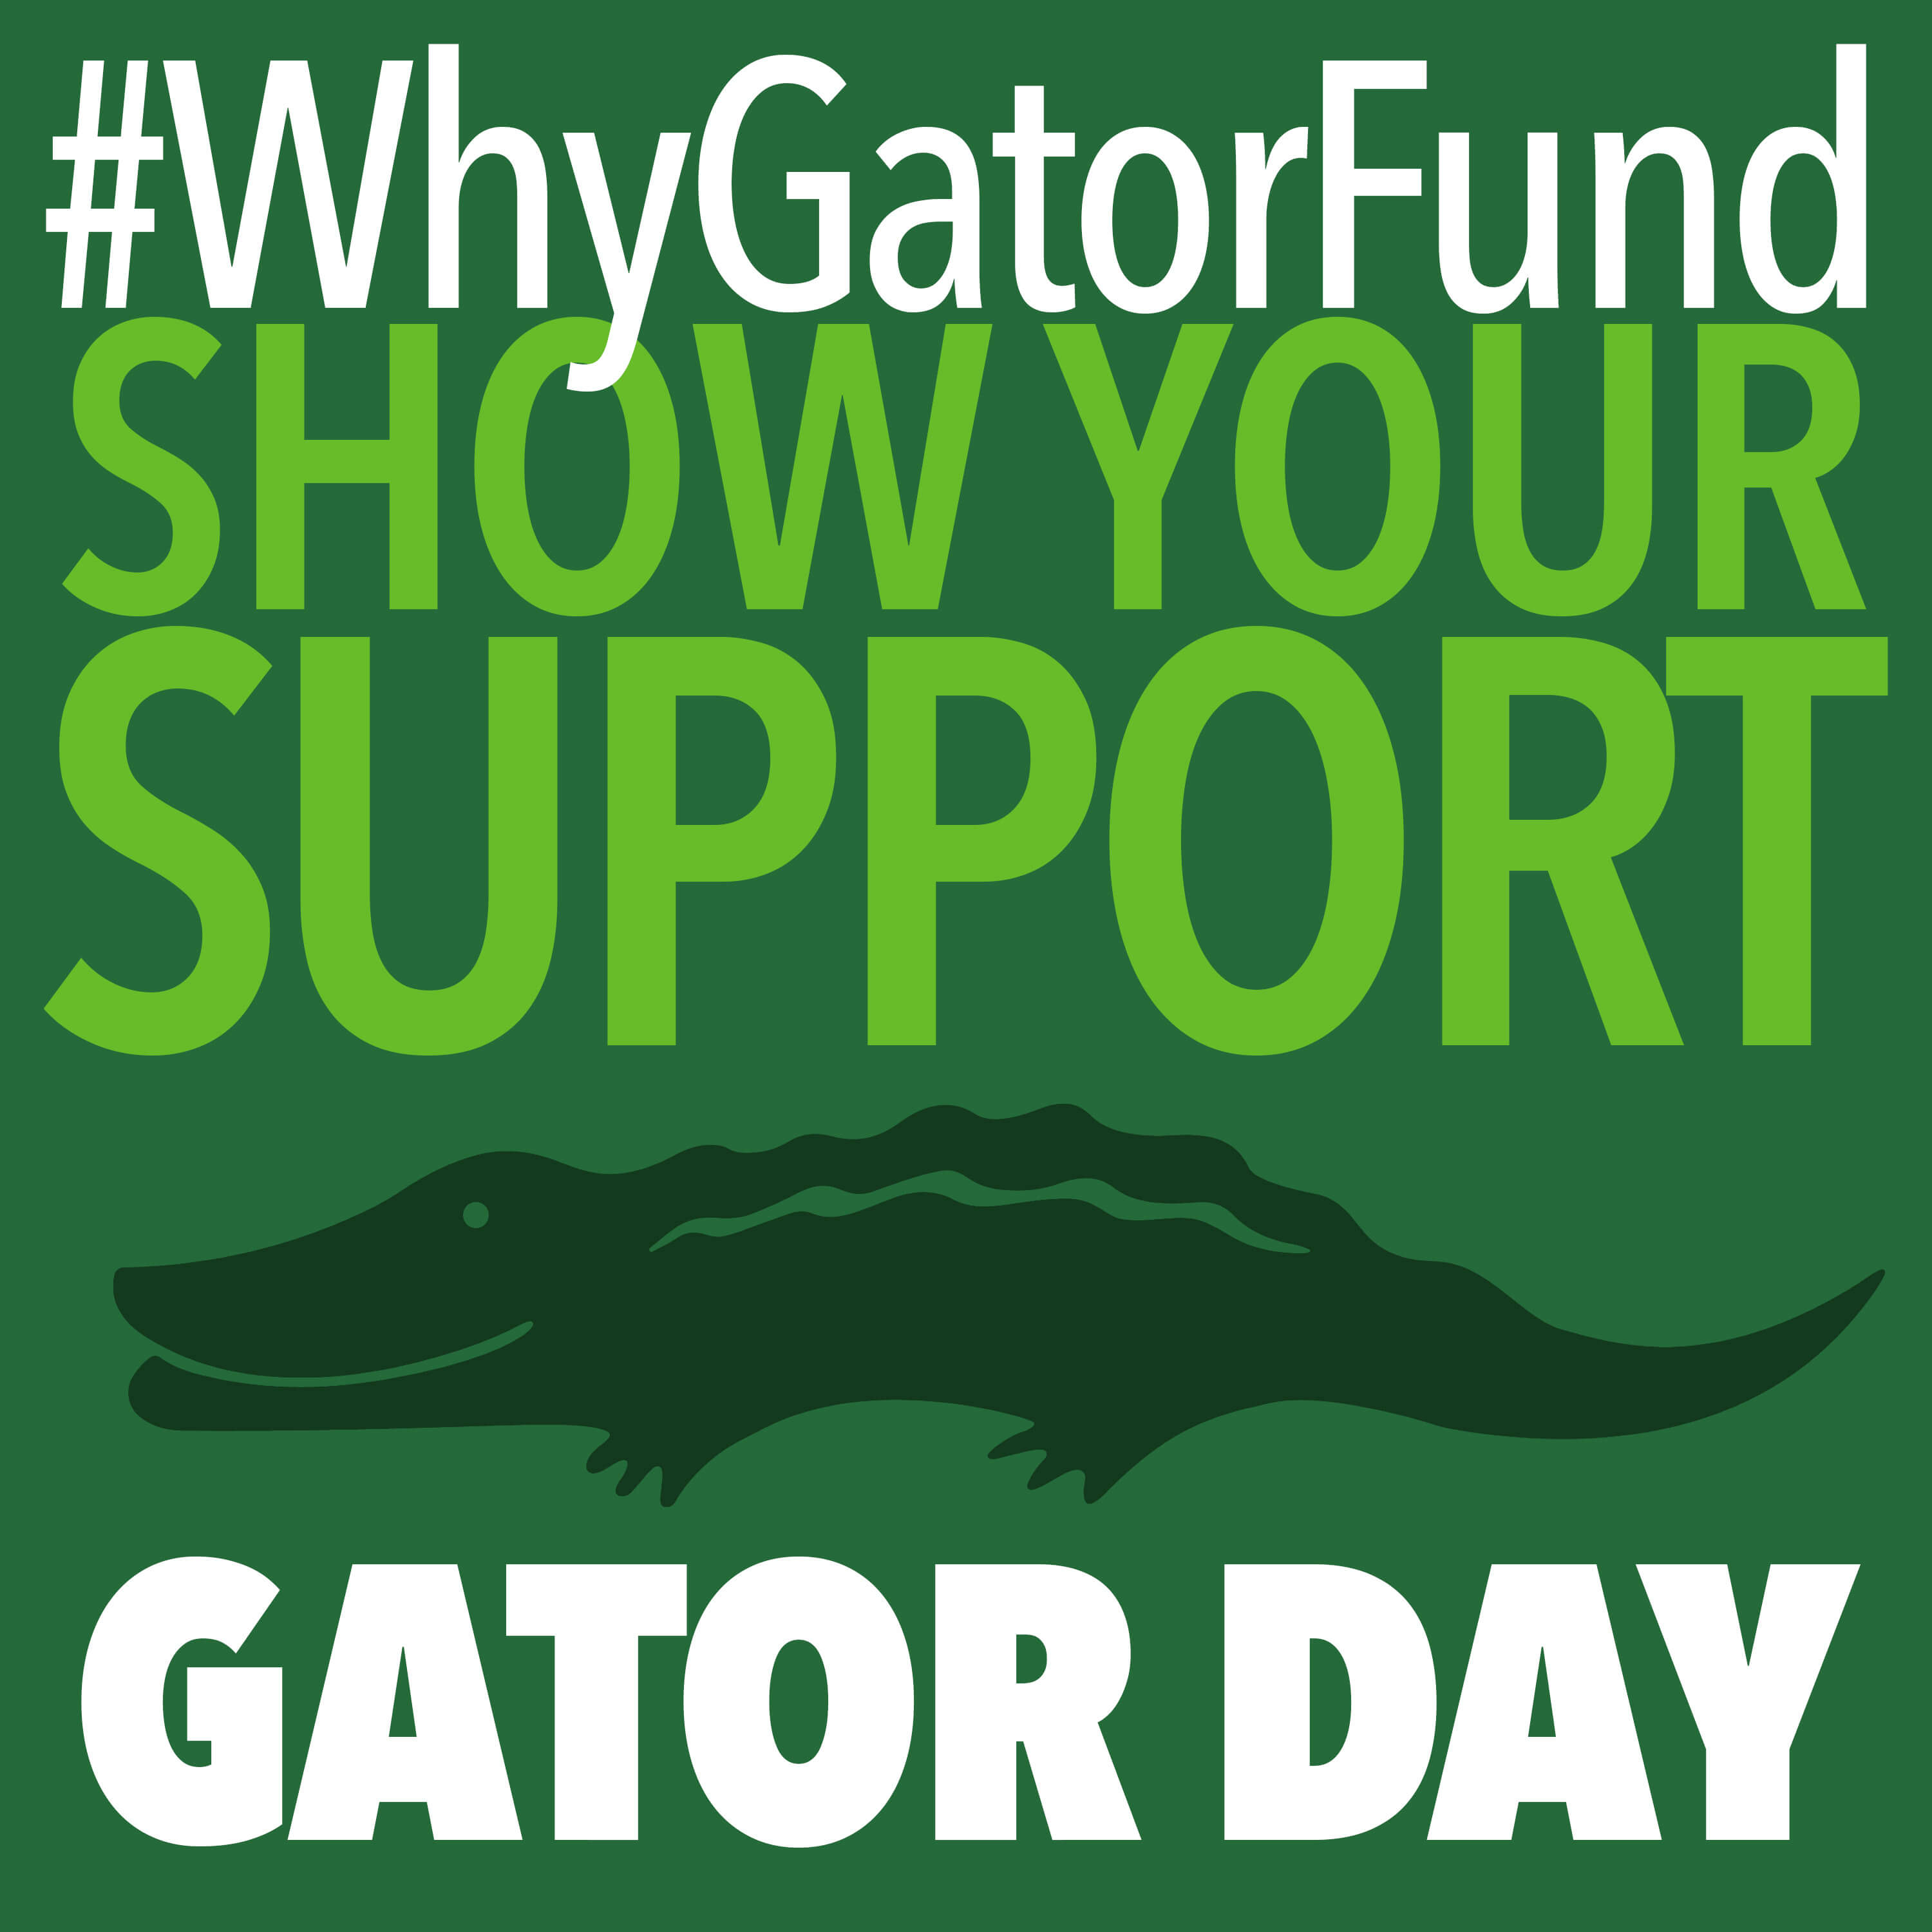 It's Gator Day! Today, Thursday, October 13